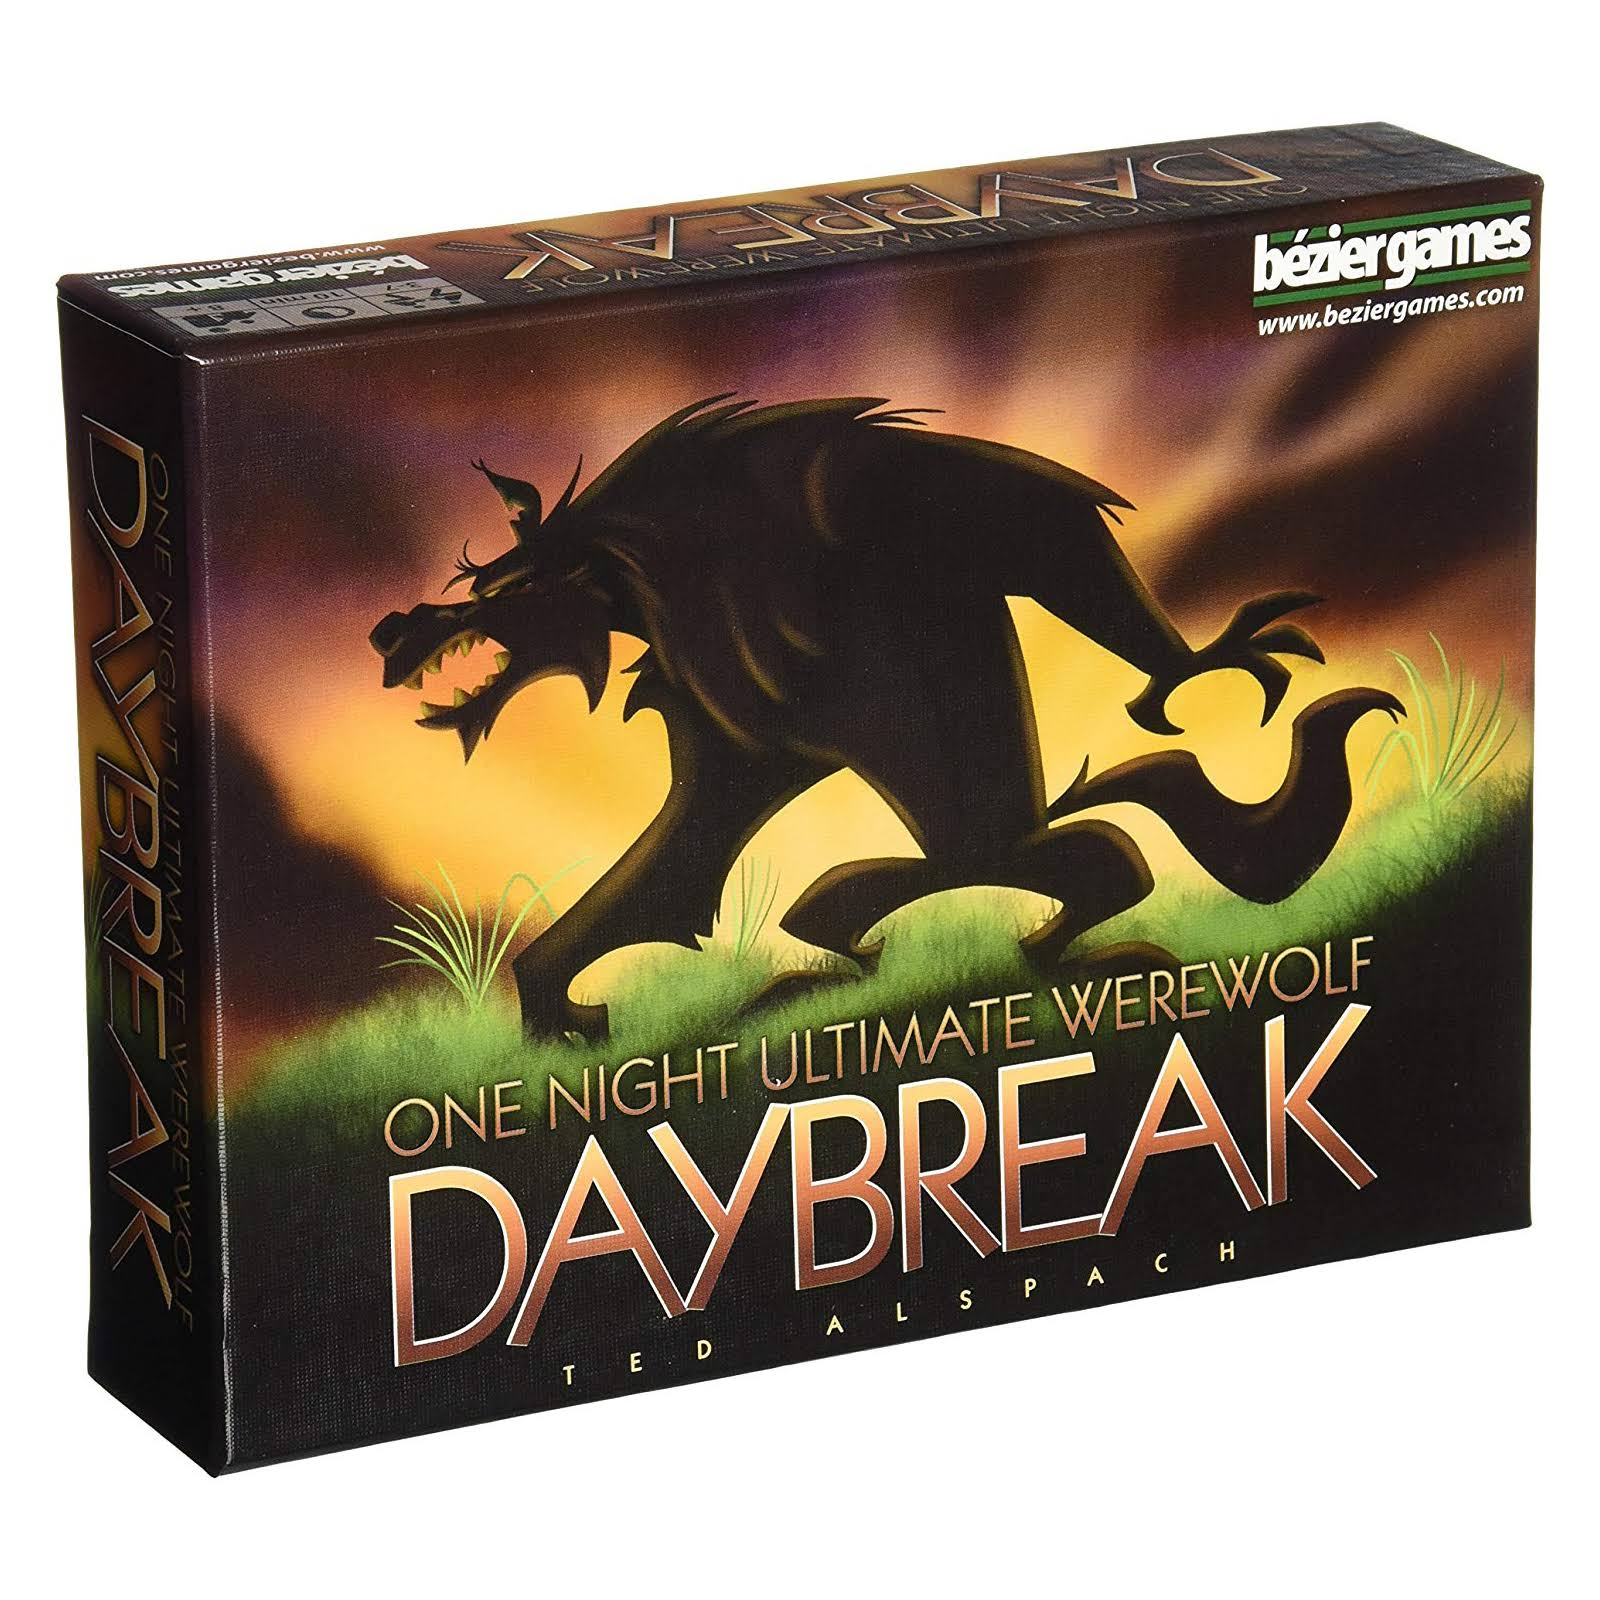 Bezier Games One Night Ultimate Werewolf Daybreak Game